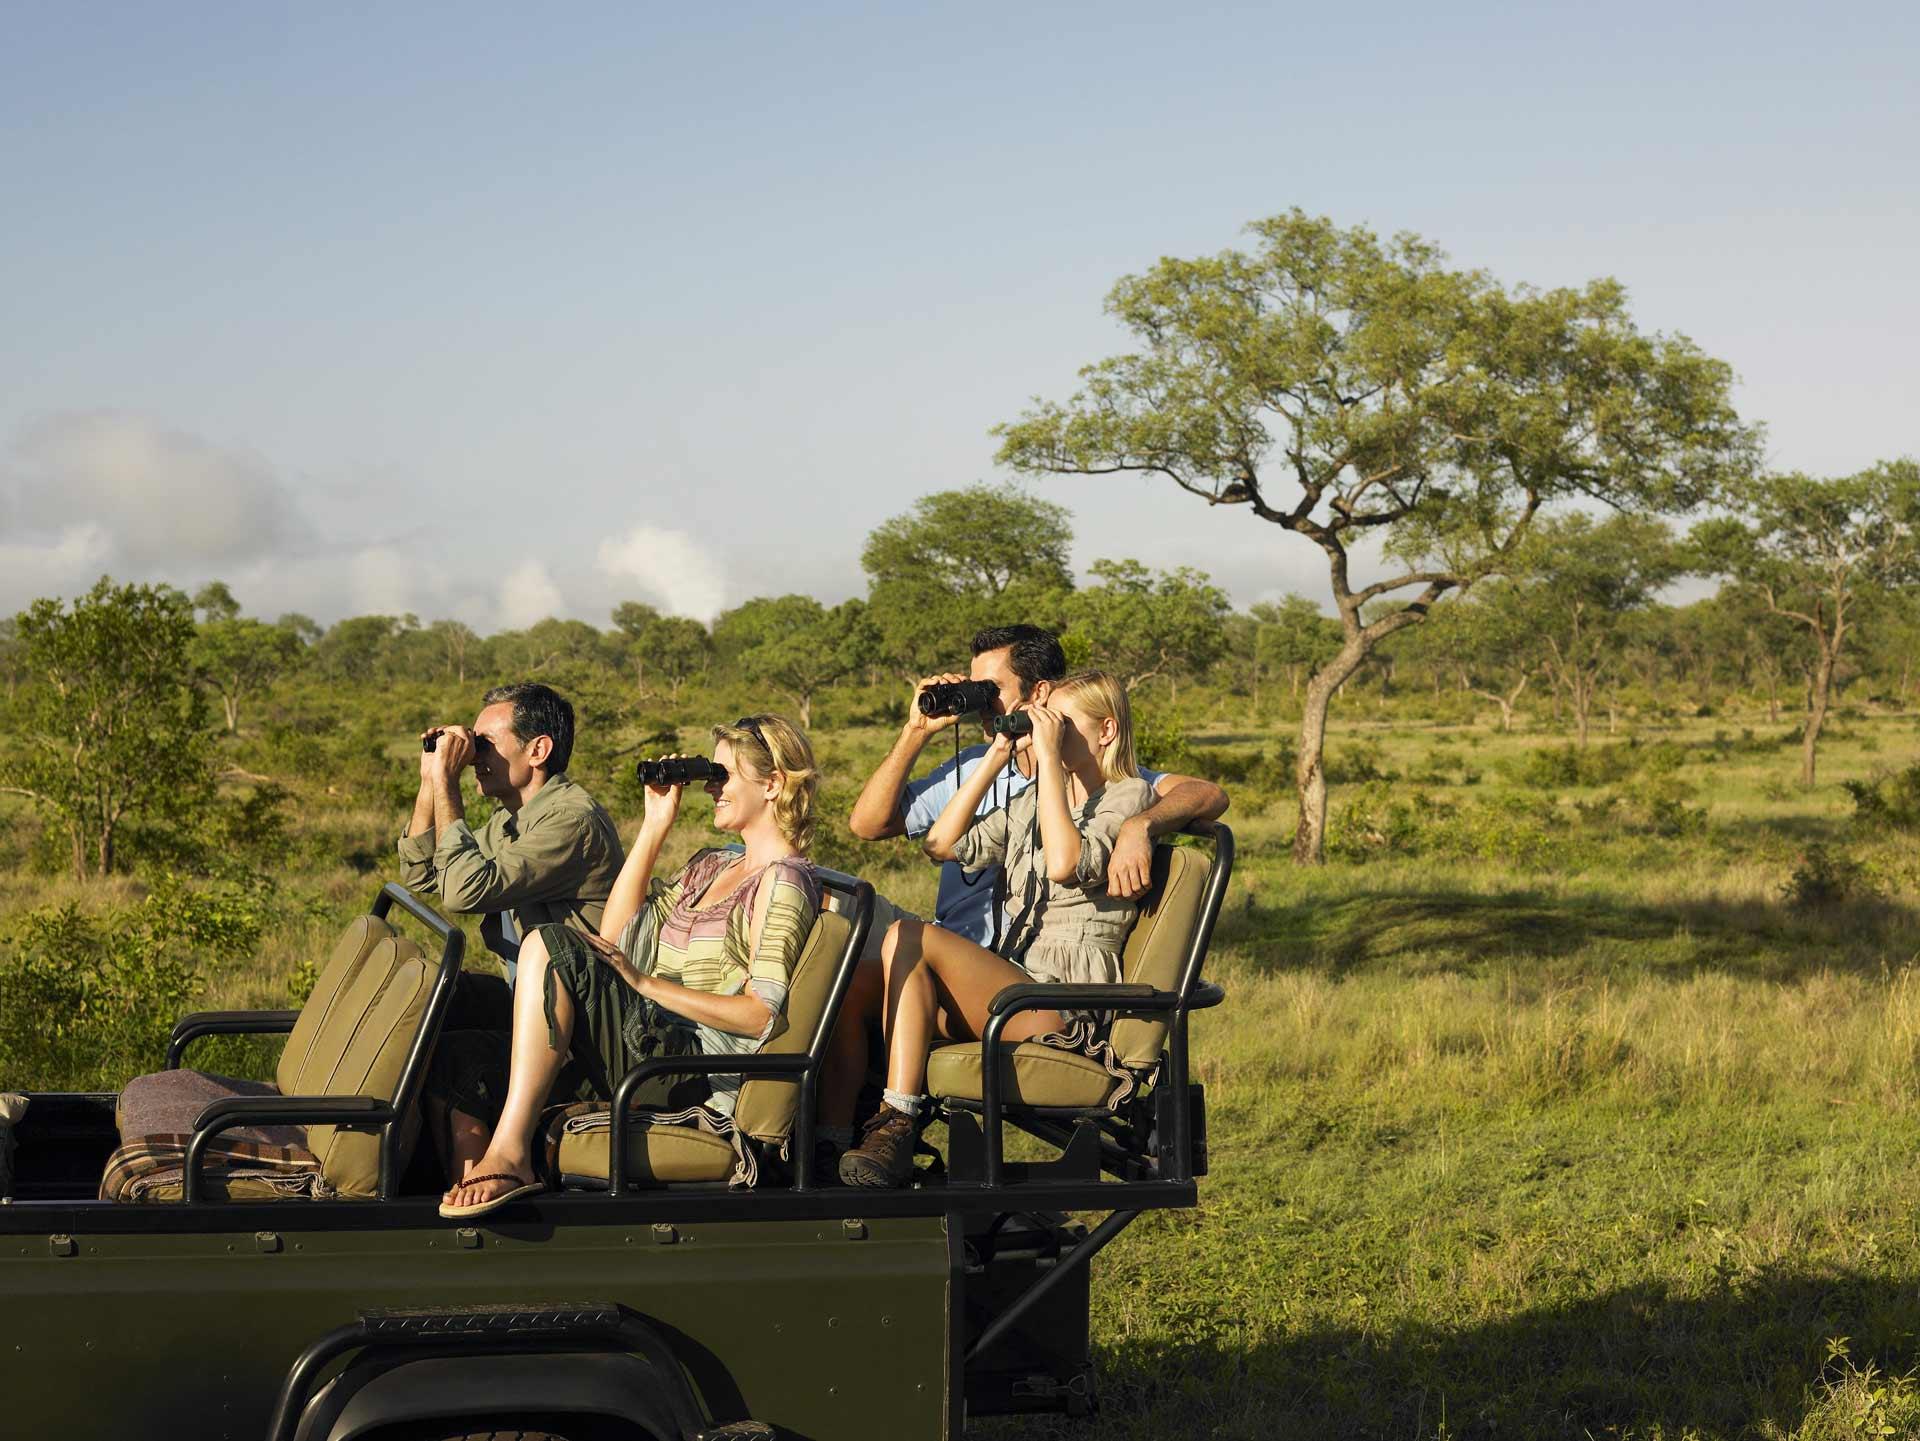 Tourists viewing game from an open safari vehicle